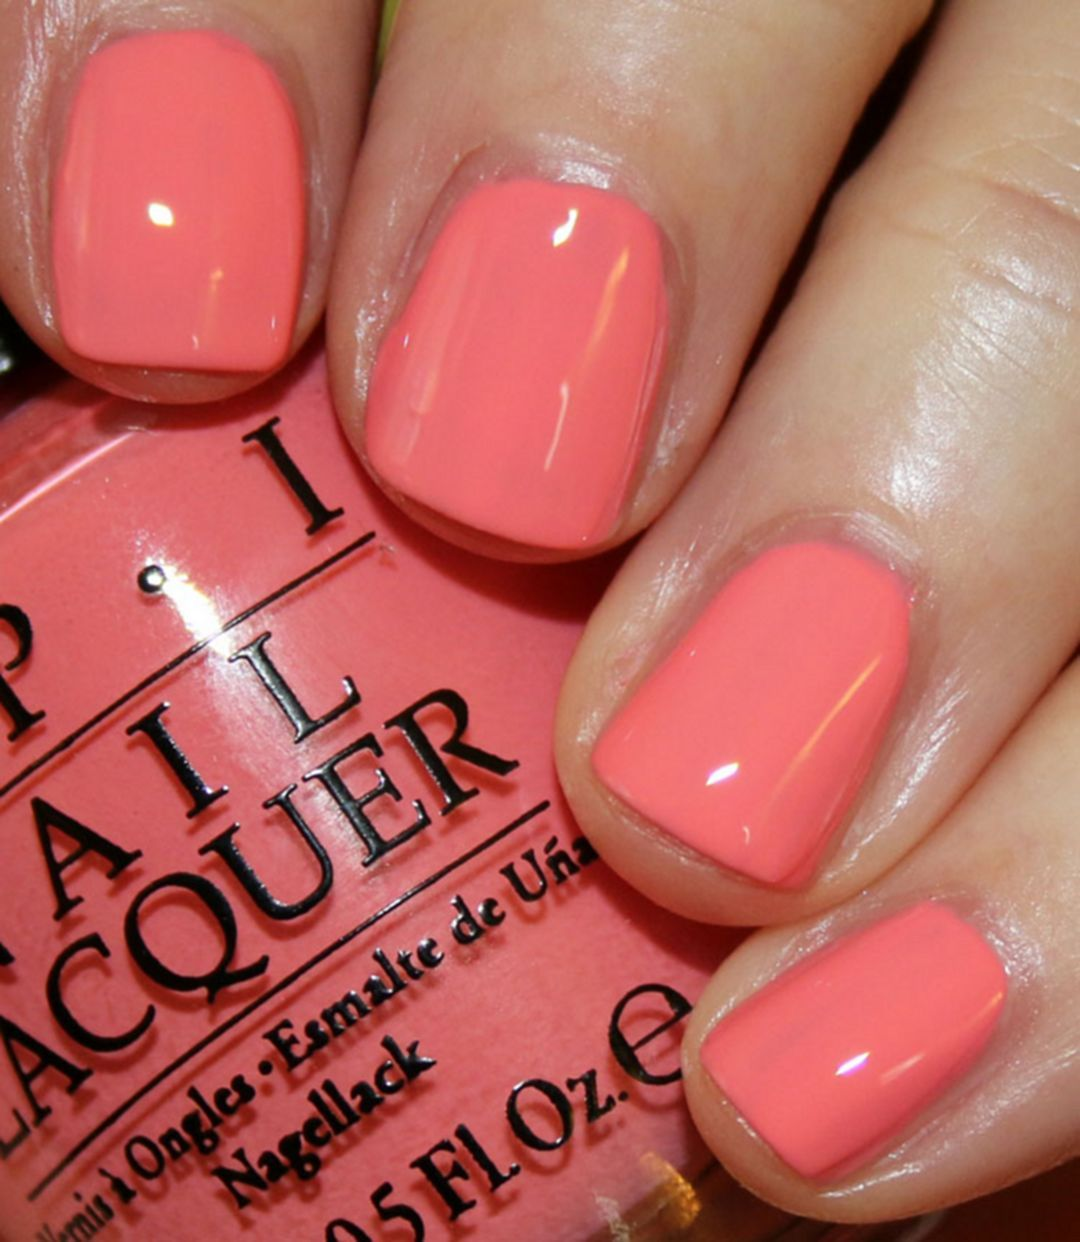 75+ Beautiful New Orleans Nails Art Ideas | Face skin care, Nail ...